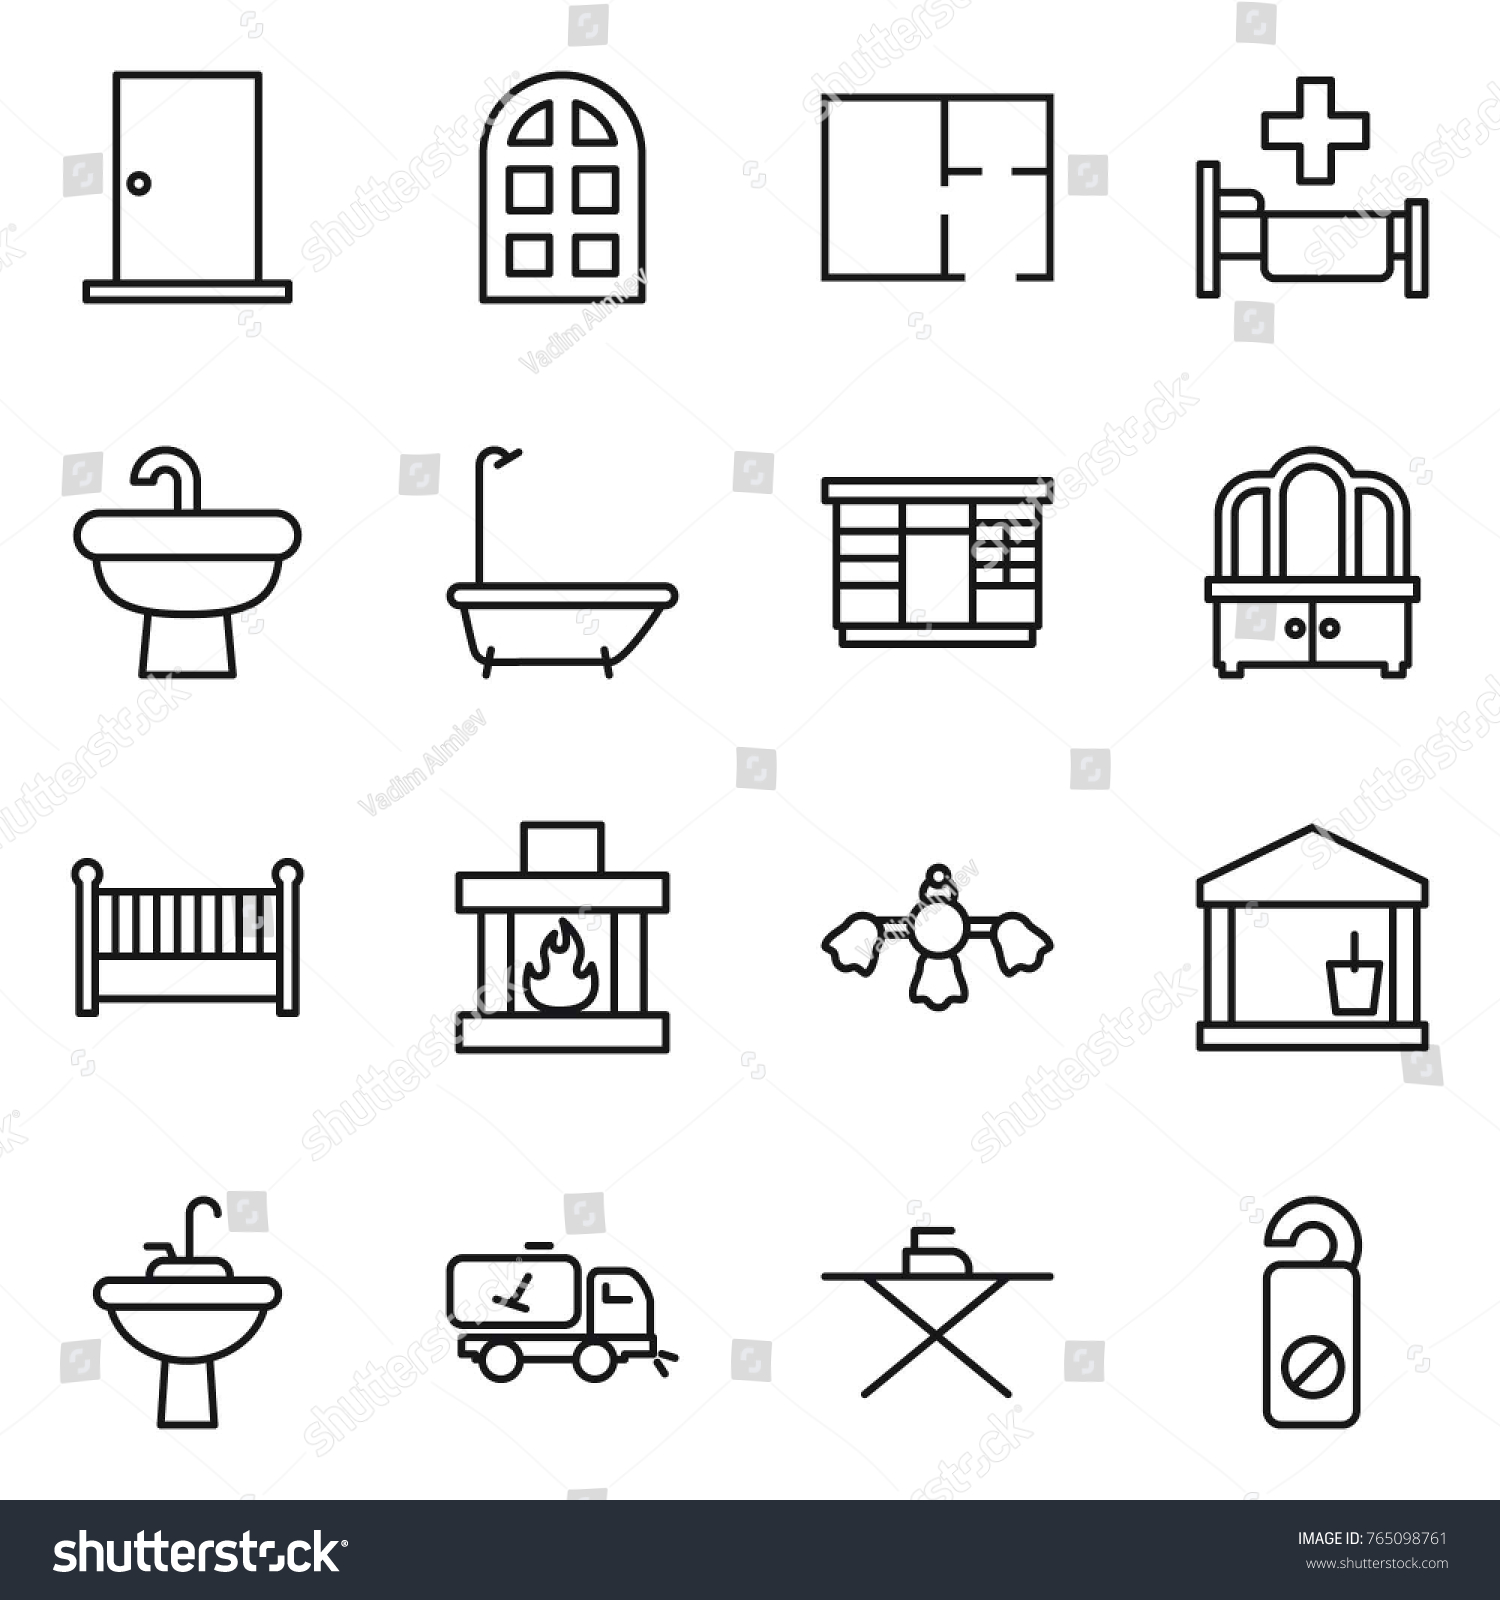 hight resolution of thin line icon set door arch window plan hospital sink